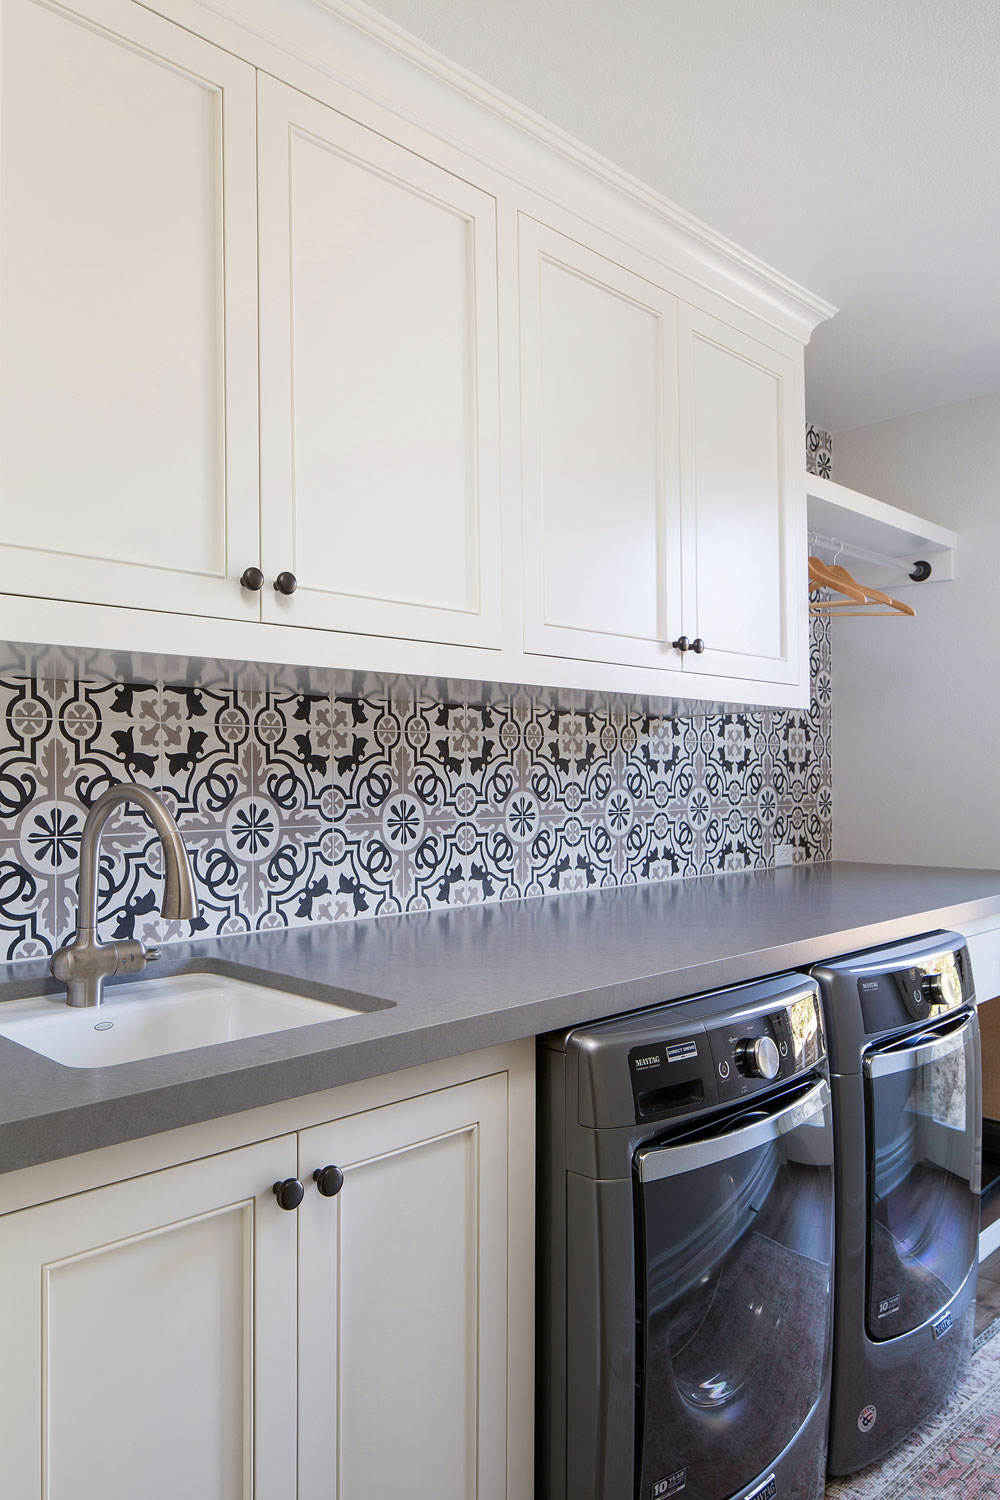 laundry-room-sink-tile-backsplash-osinoff-general-contractors.jpg